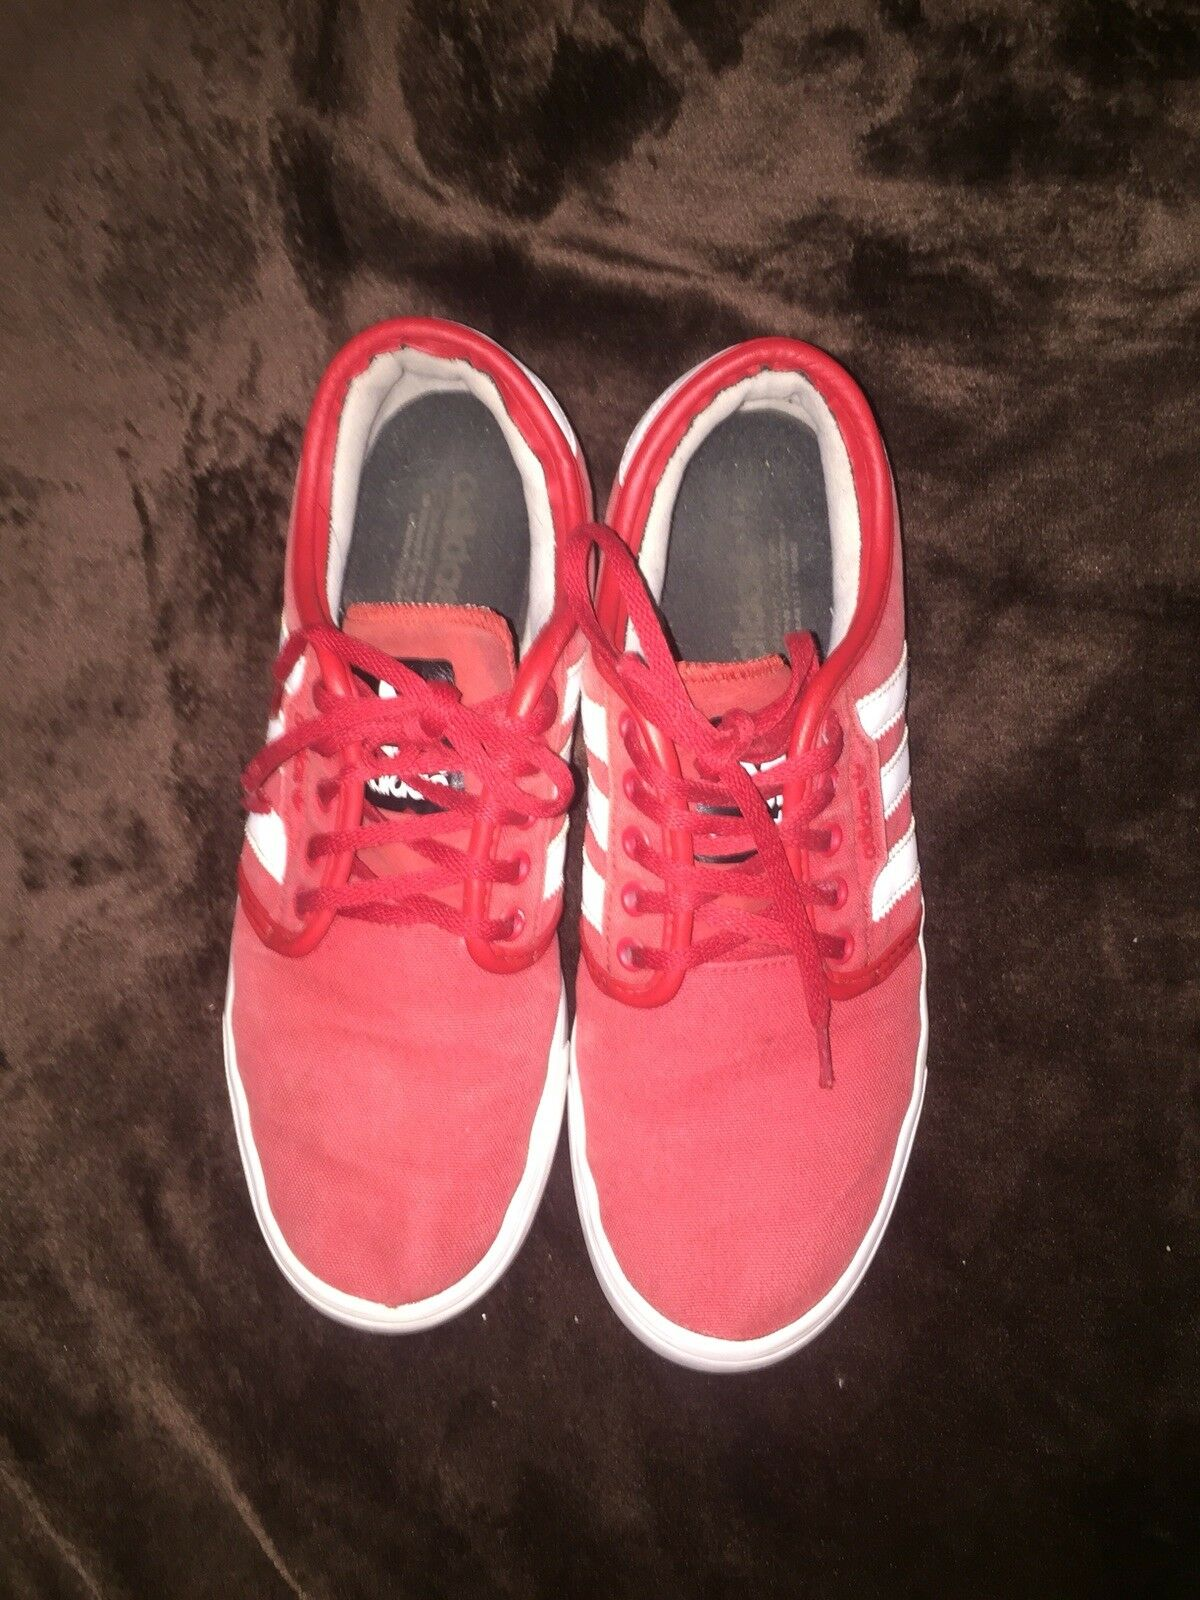 Adidas Seeley Shoes Men's | 7.5 | Red New shoes for men and women, limited time discount